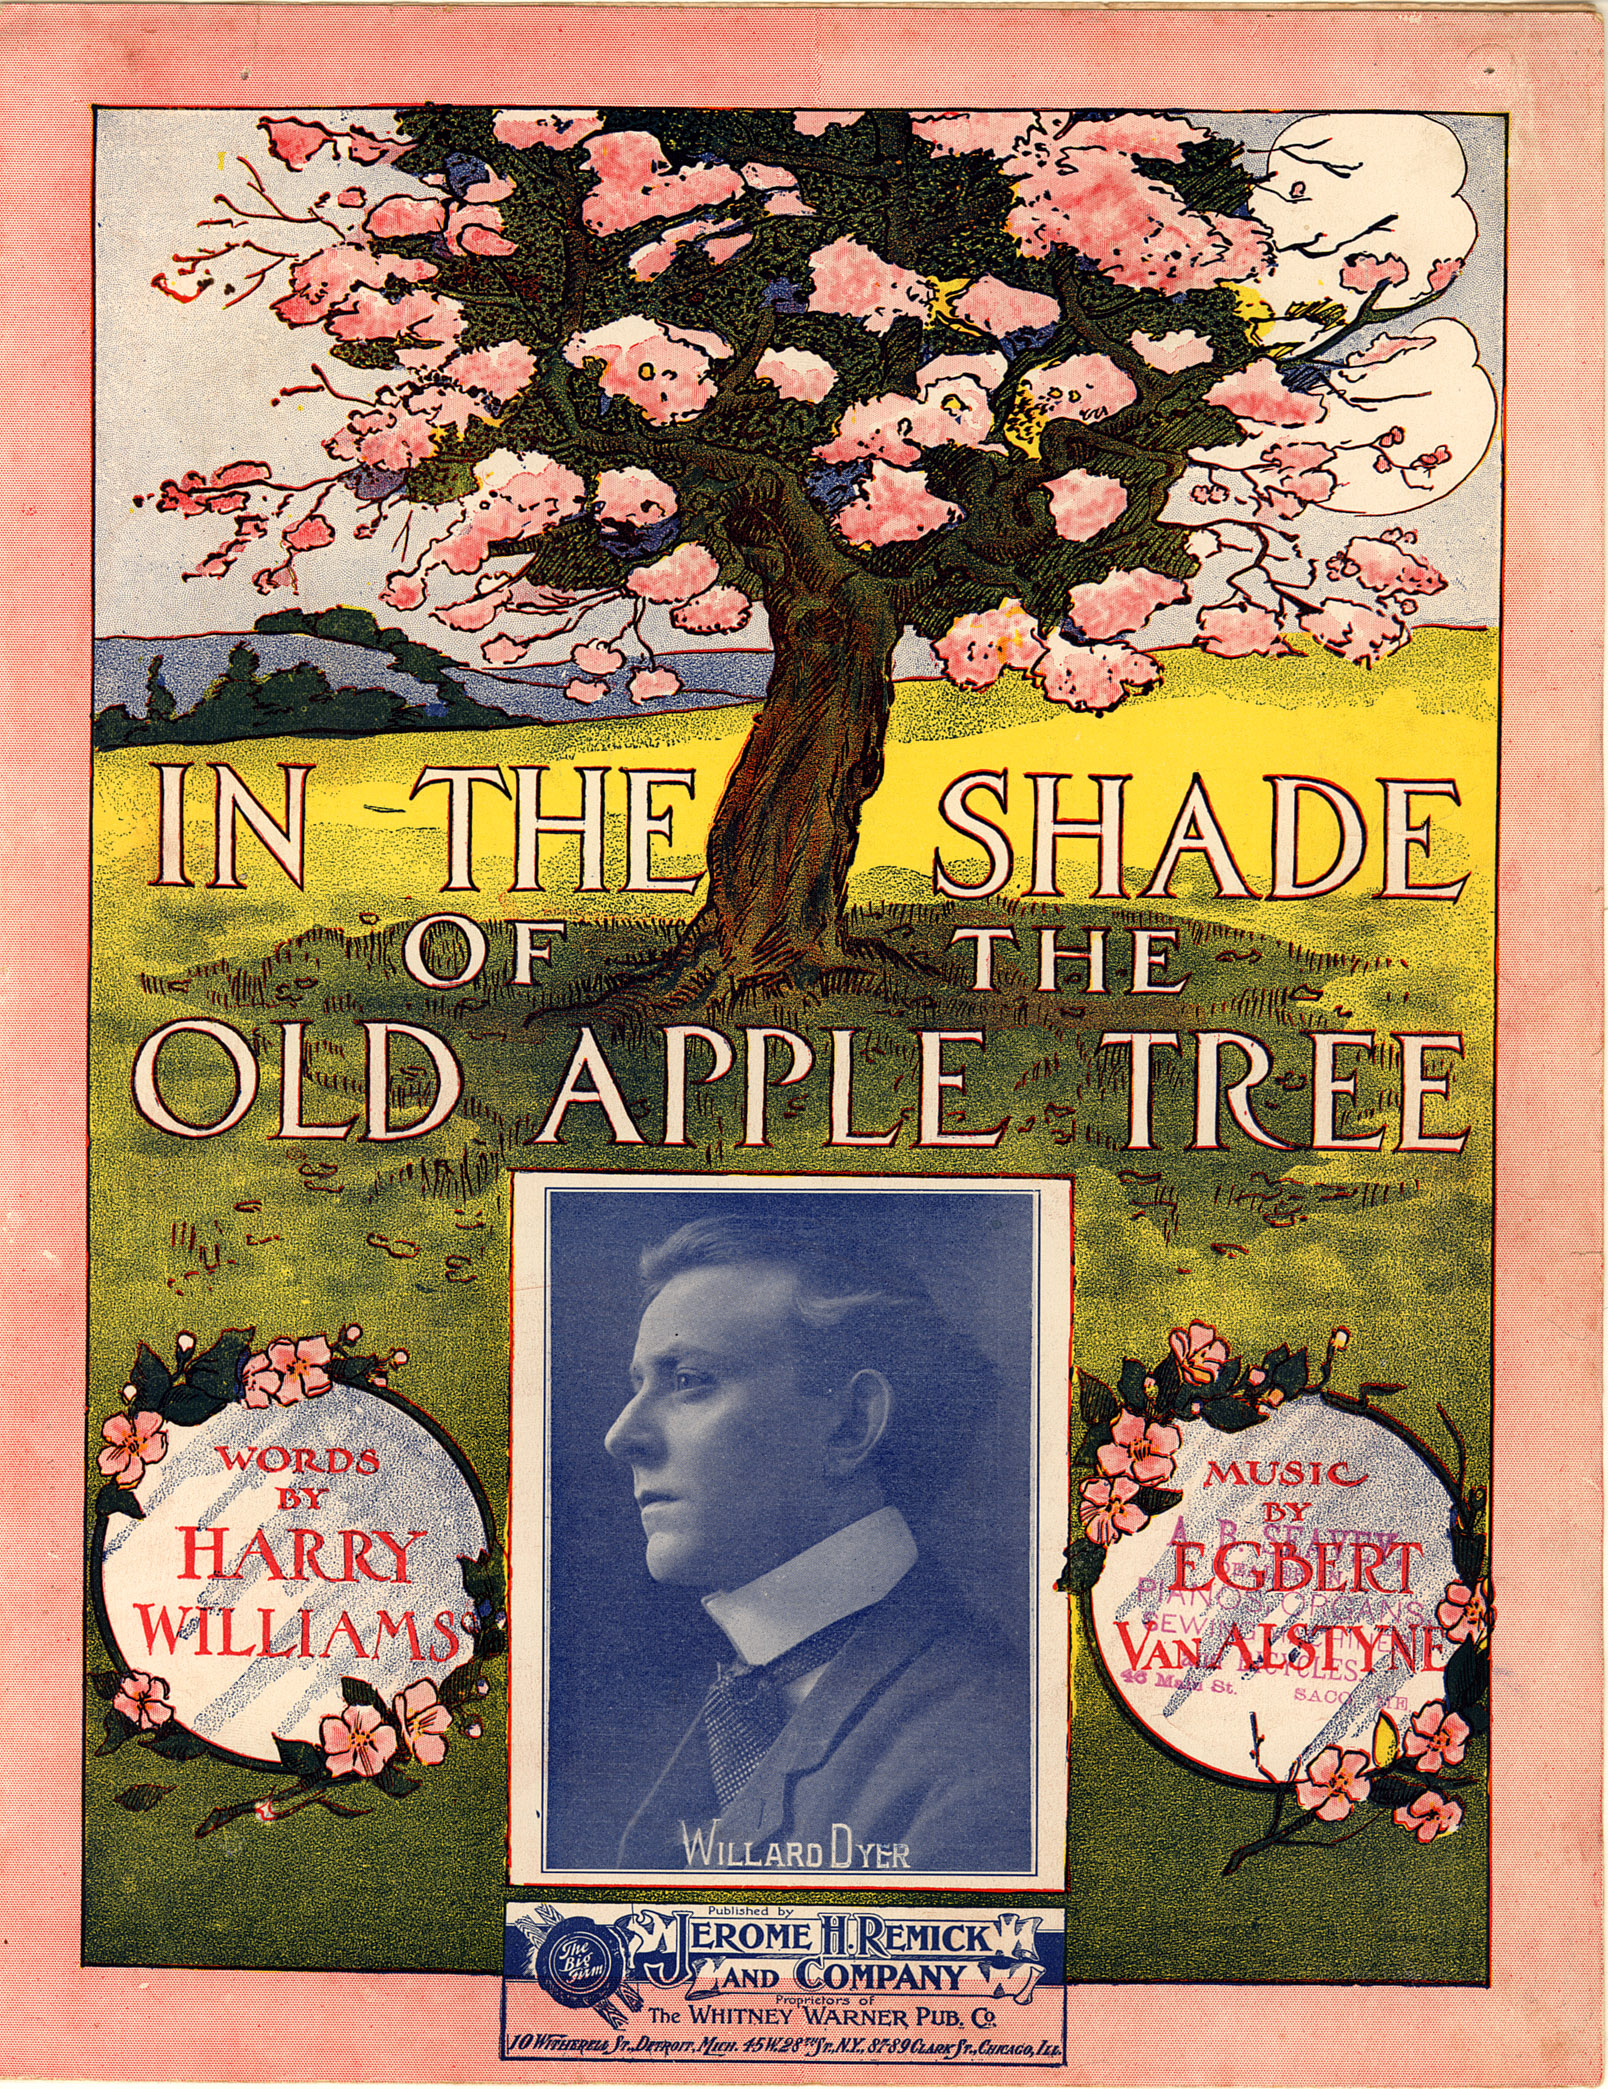 In the Shade of the Old Apple Tree